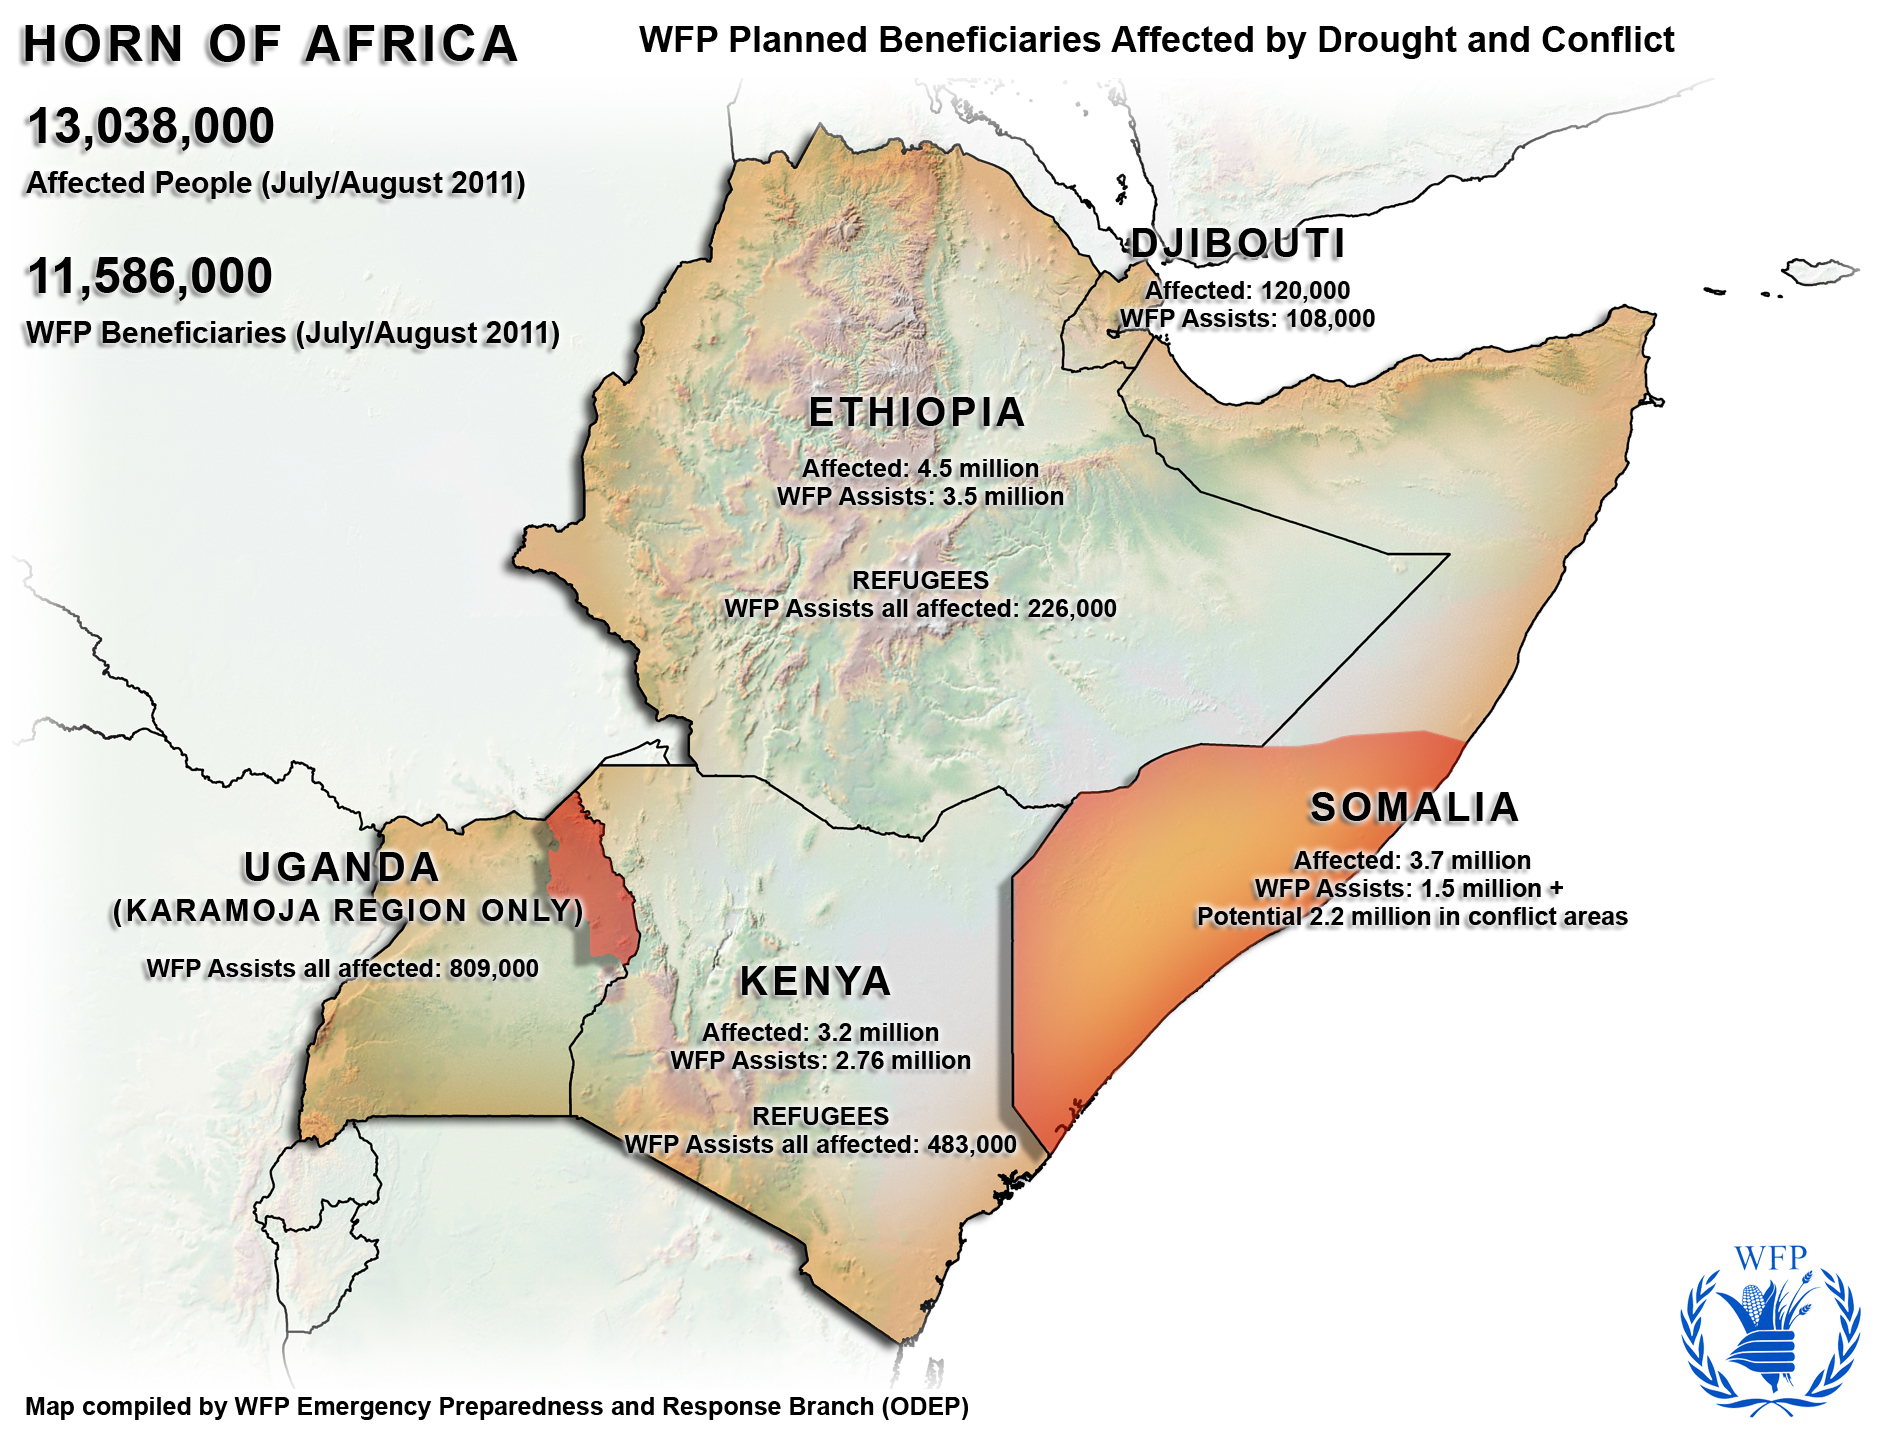 Horn Of Africa WFP Planned Beneficiaries Affected By Drought And - Horn of africa map